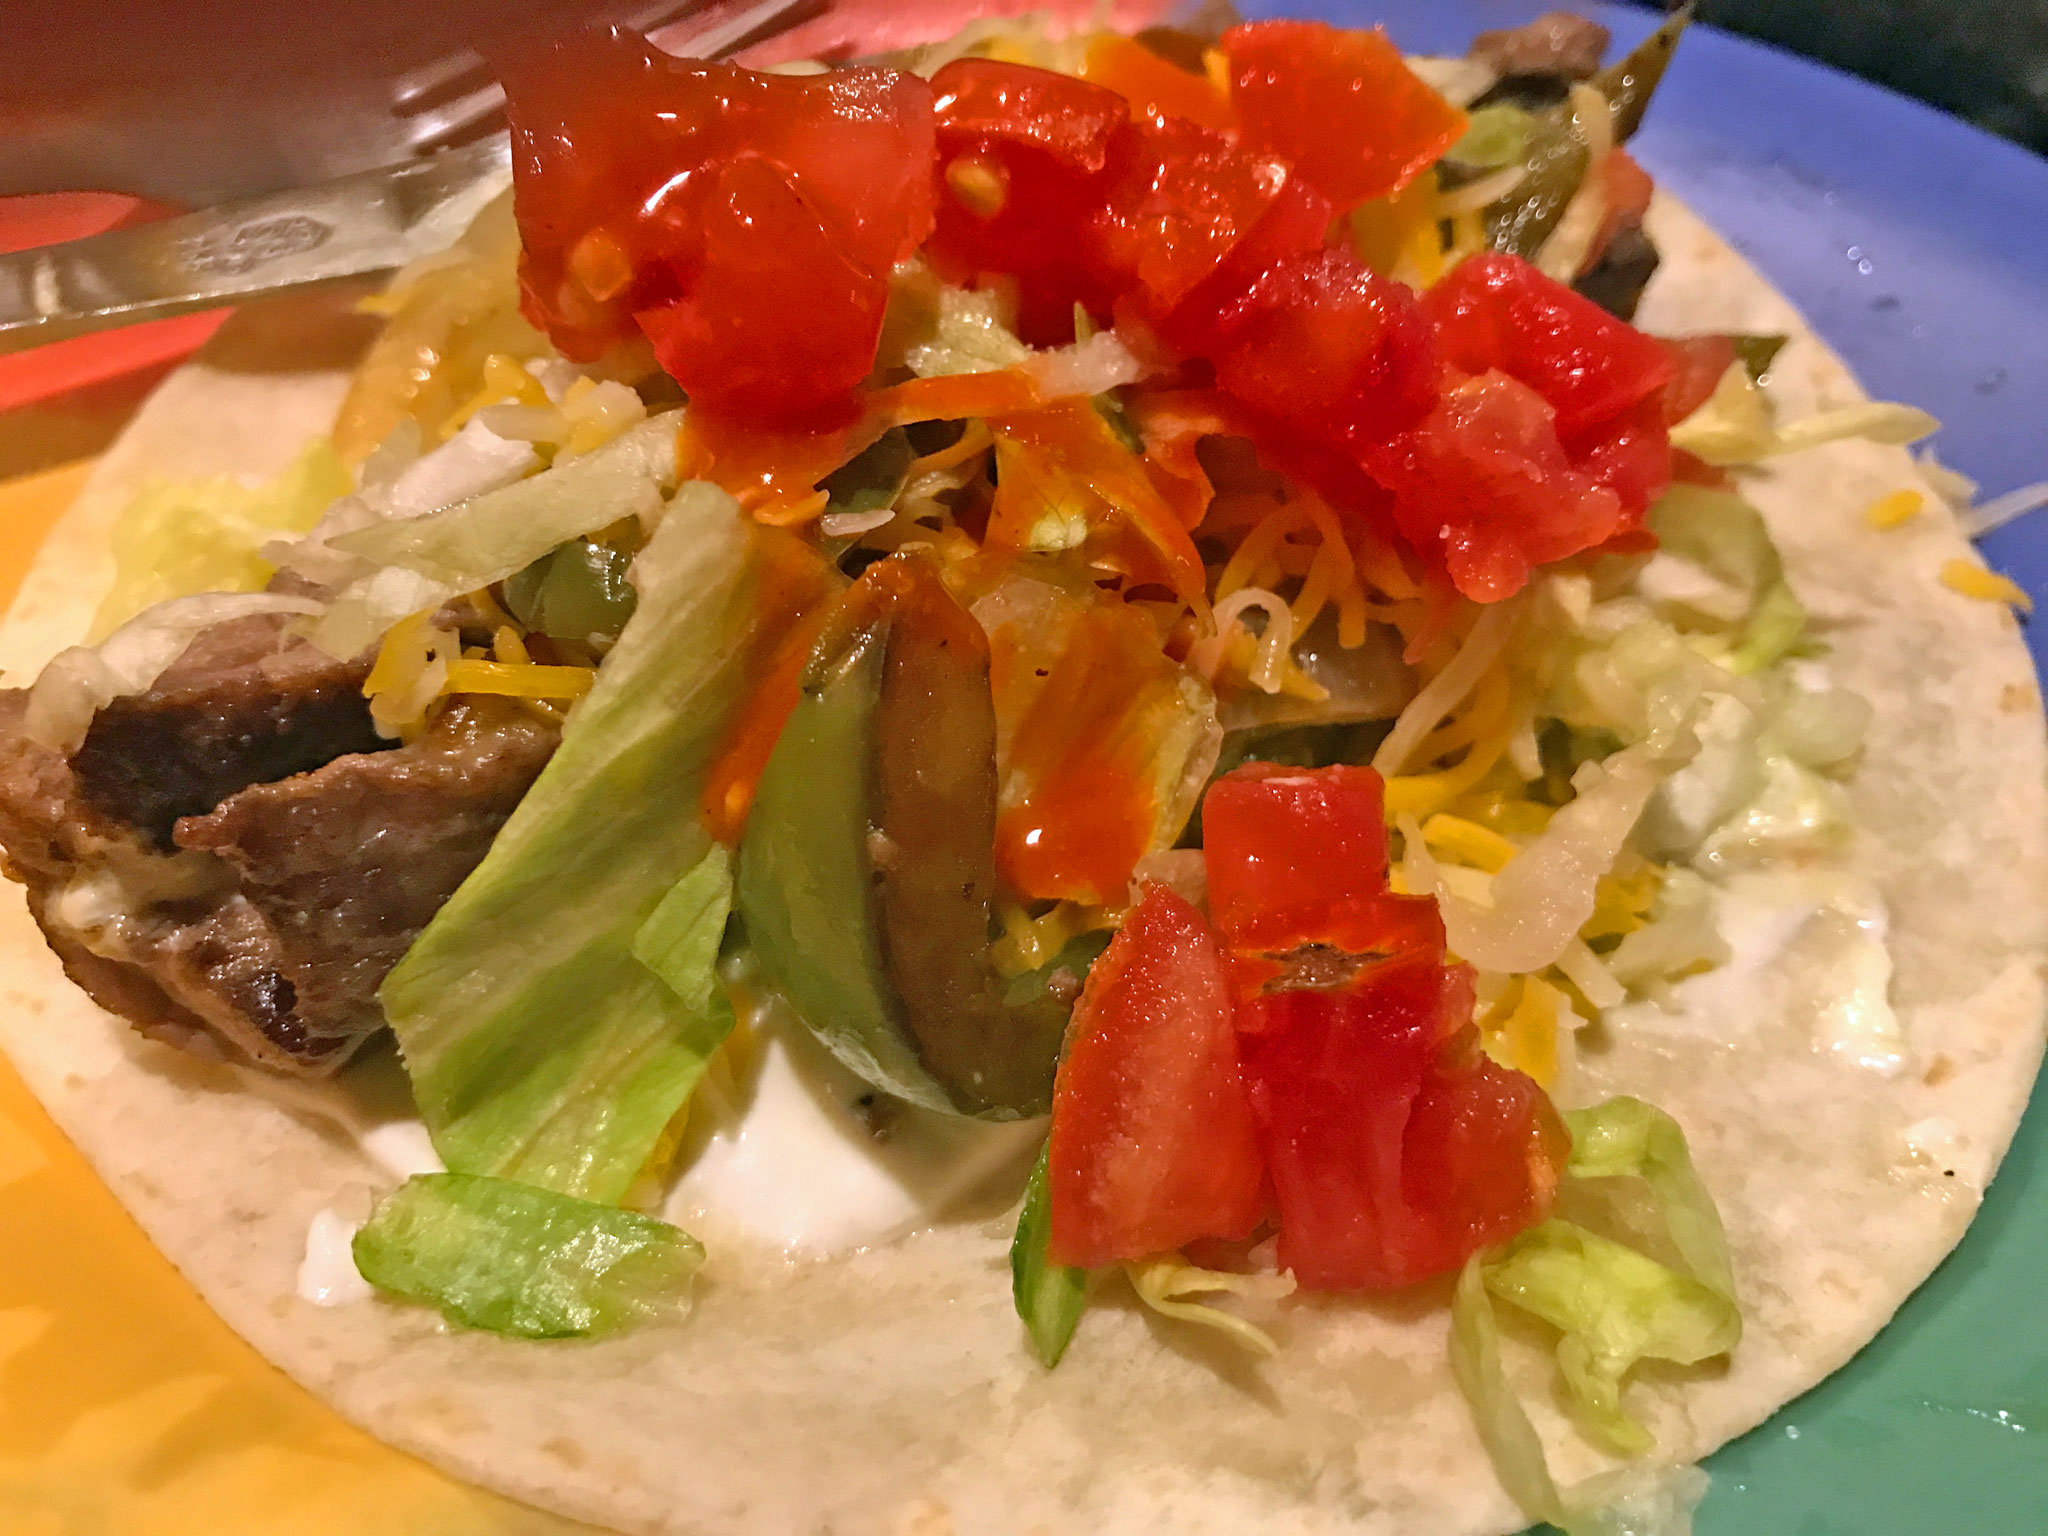 Fajita with toppings